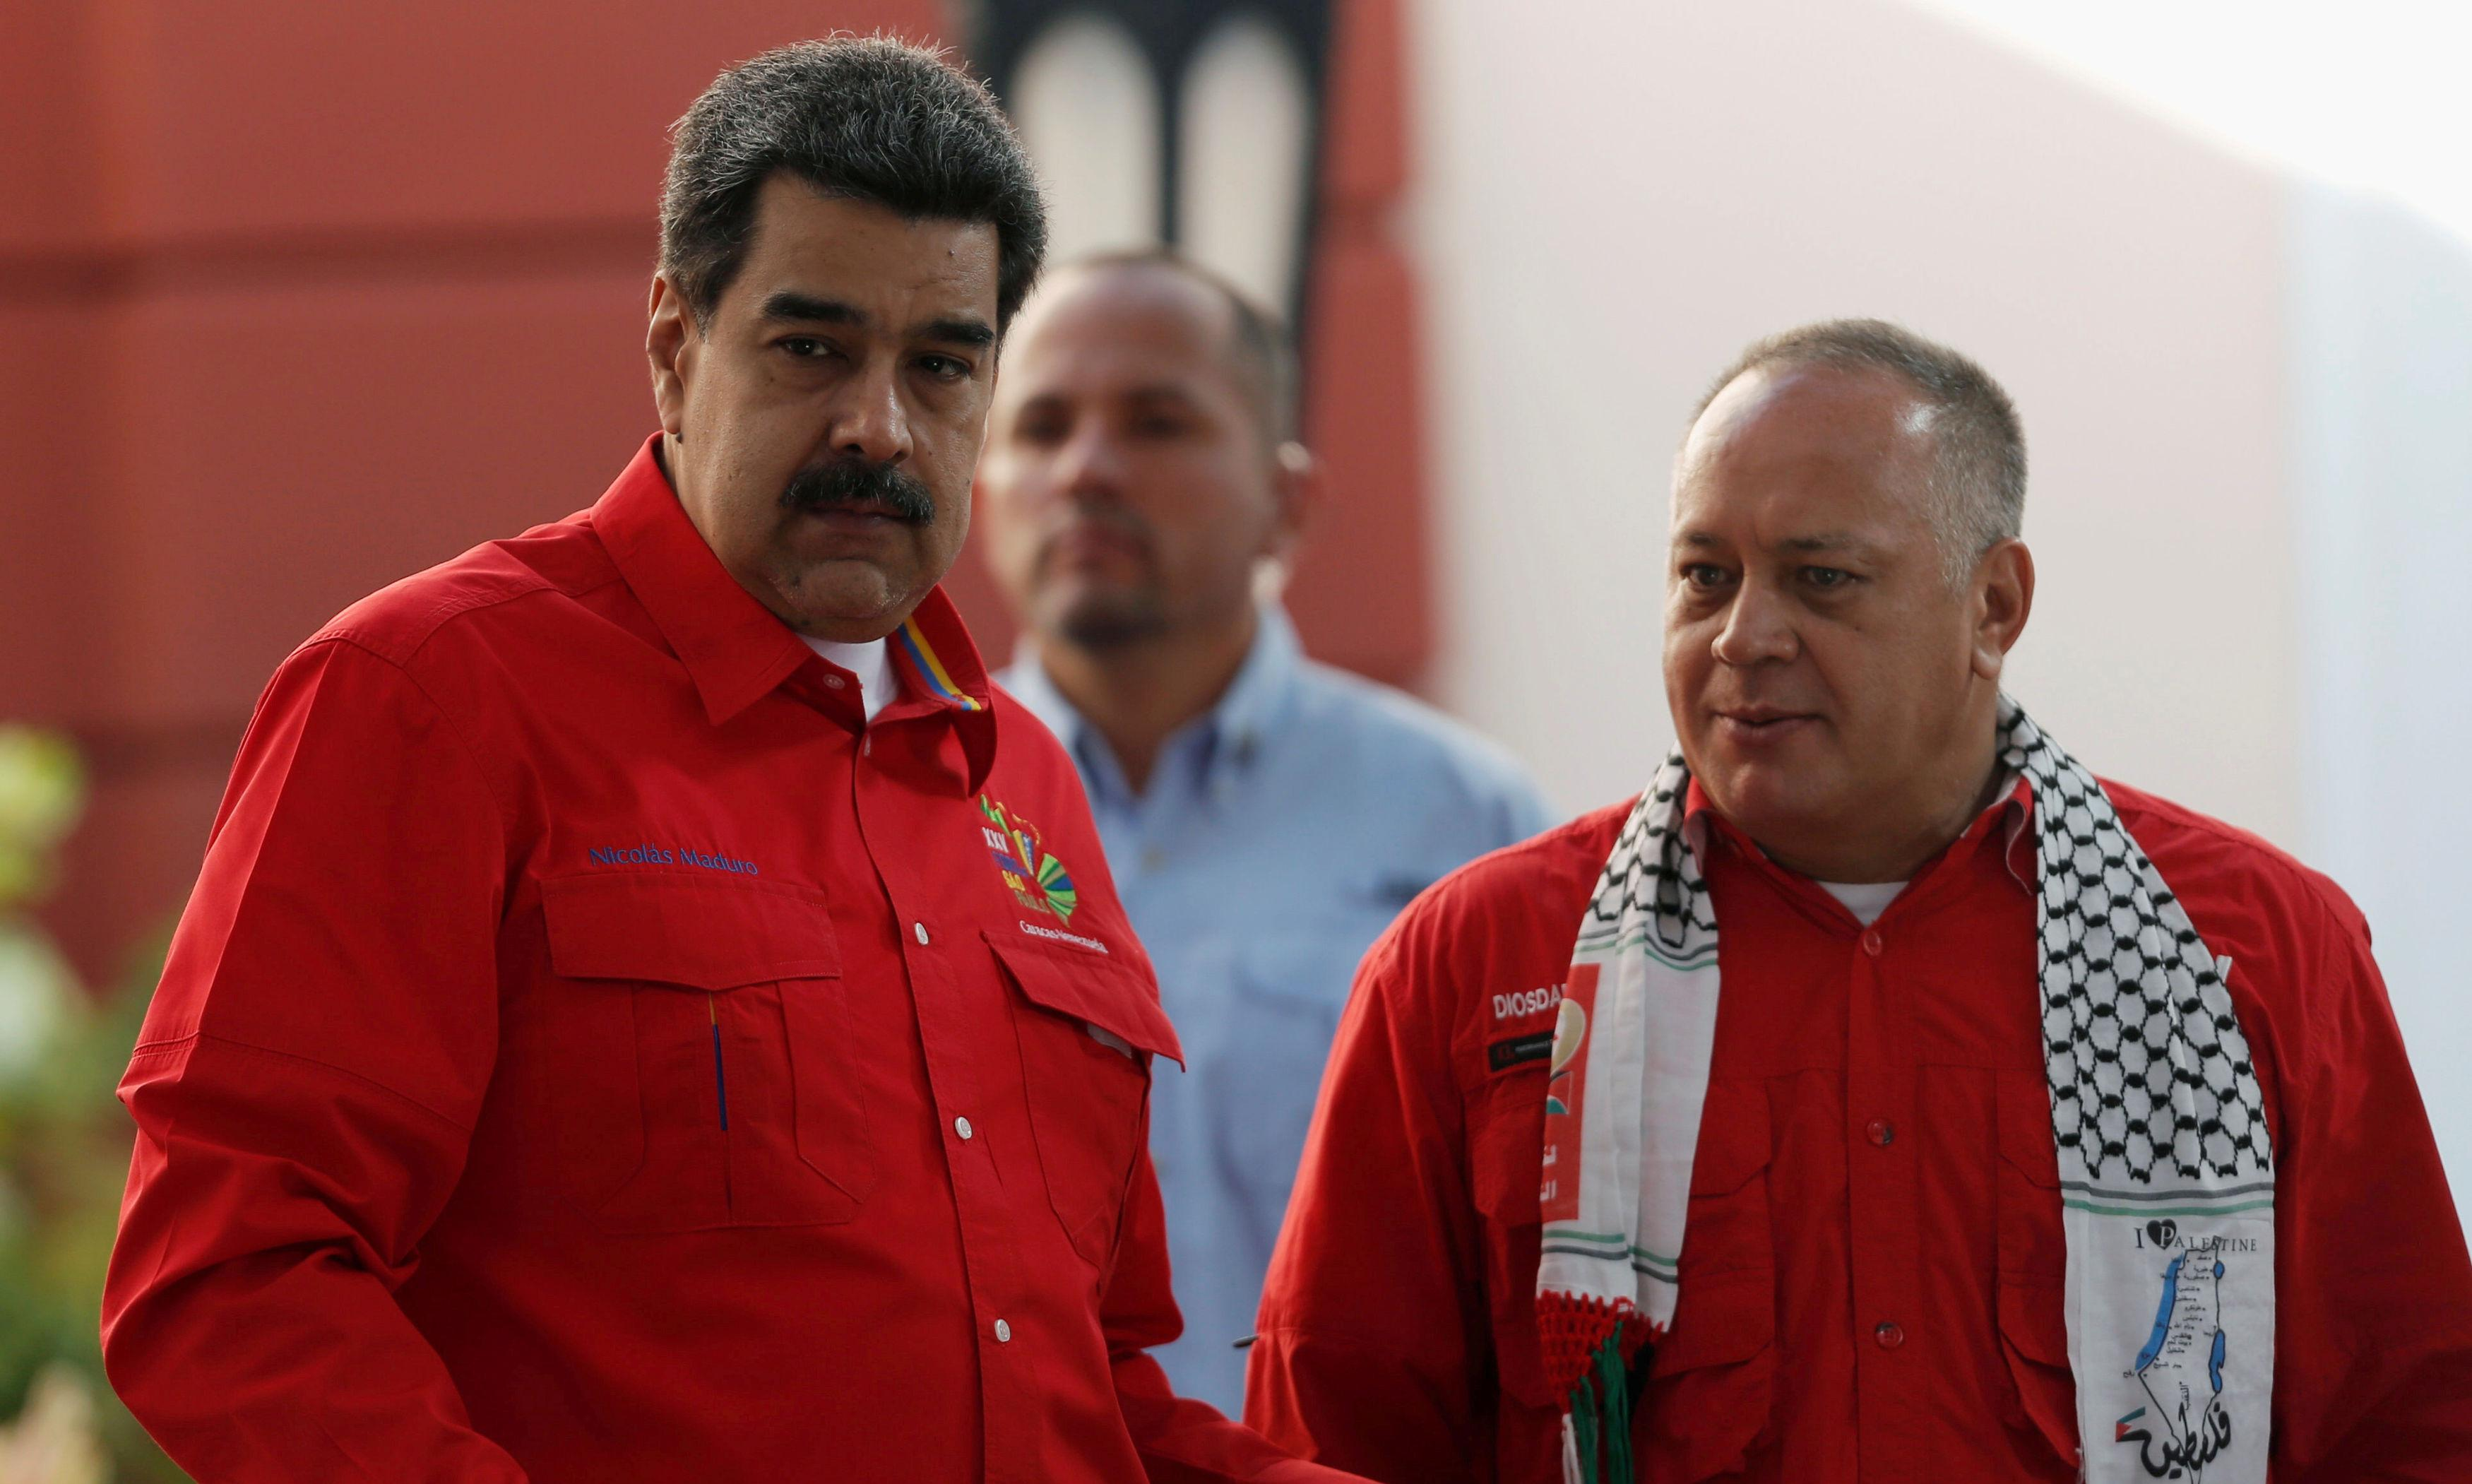 Venezuelan leader Nicolás Maduro confirms months of secret US talks